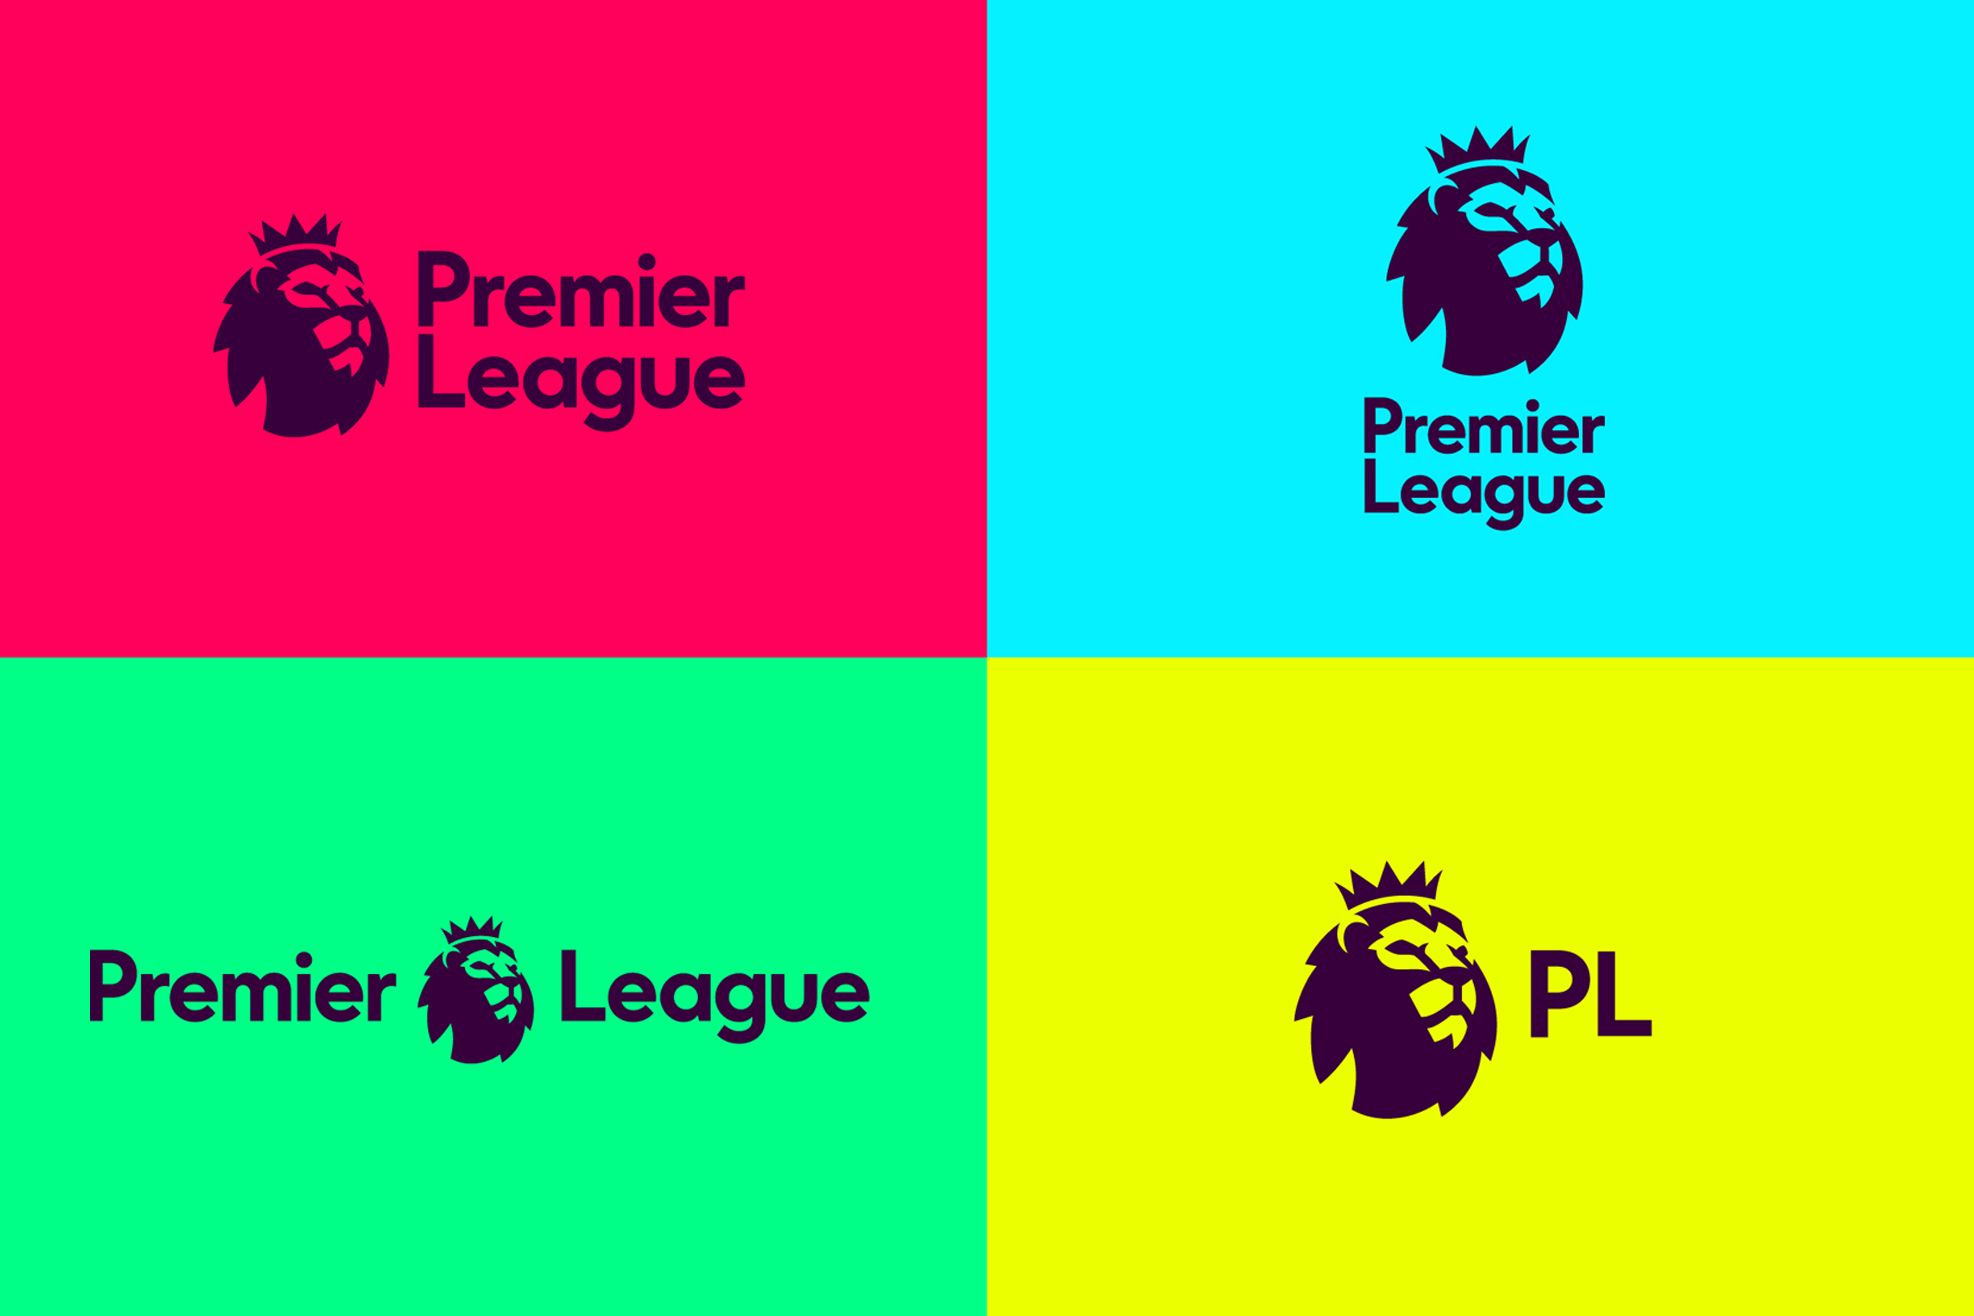 Barclays Premier League gets a rebrand 1